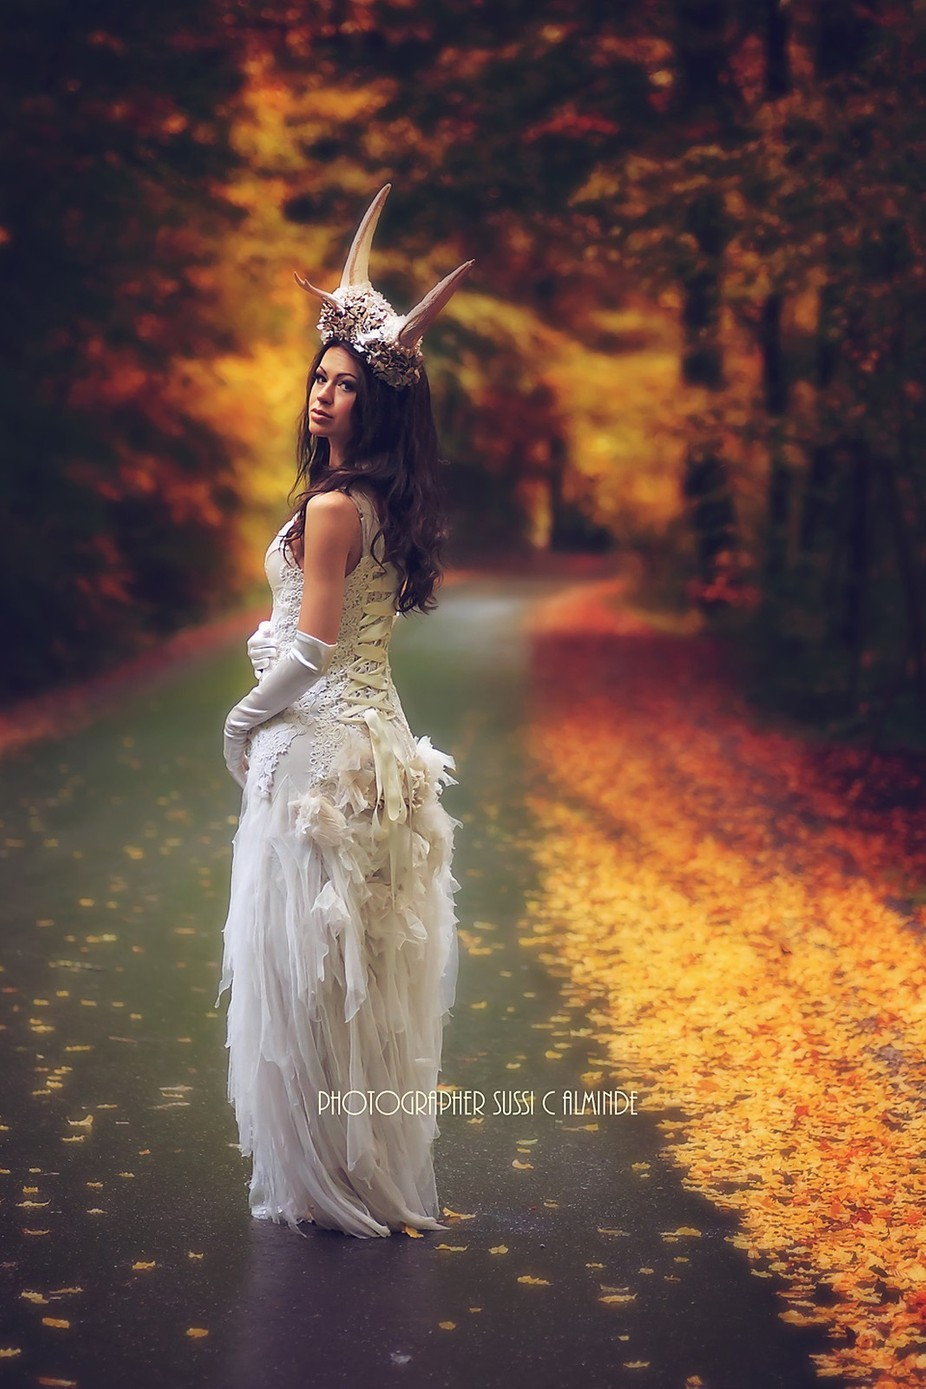 Autumn soul  by sussicharlottealminde - Hats Photo Contest